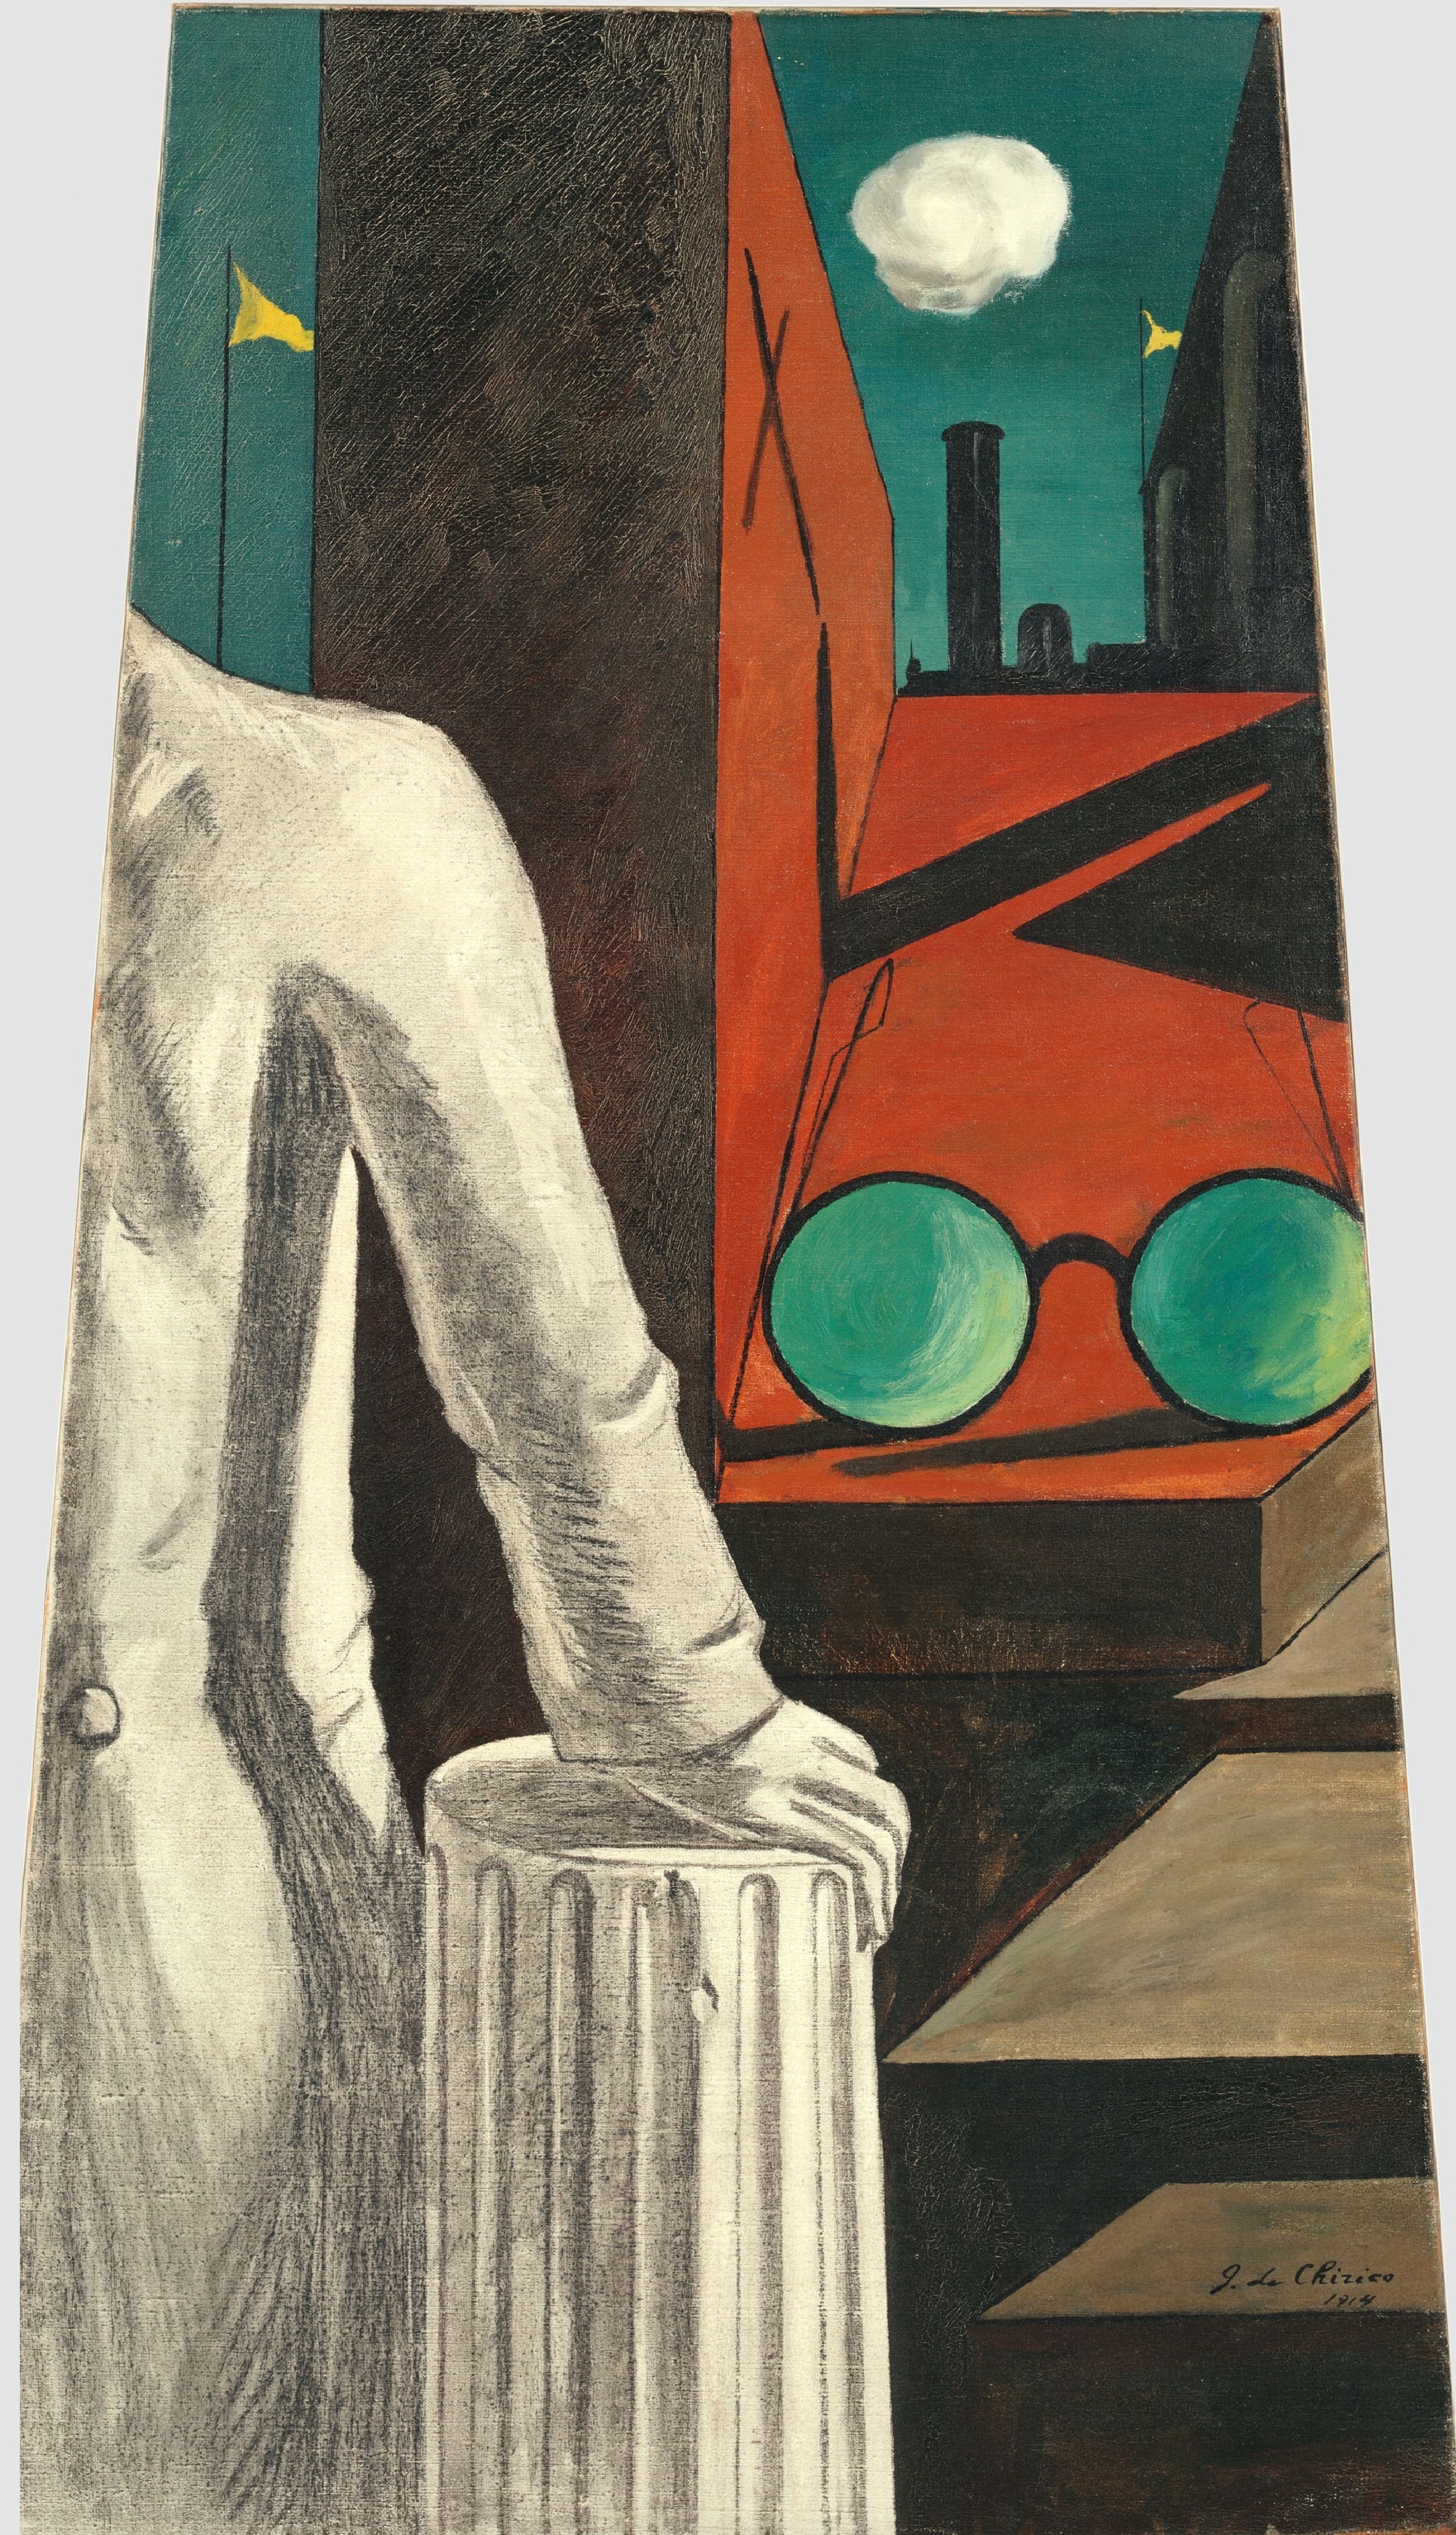 Giorgio de Chirico Die Heiterkeit des Gelehrten * La Sérénité du savant, April 1914 Öl und Kohle auf Leinwand, 130,1 × 72,4 cm The Museum of Modern Art, New York Digital image, The Museum of Modern Art, New York / Scala, Florence